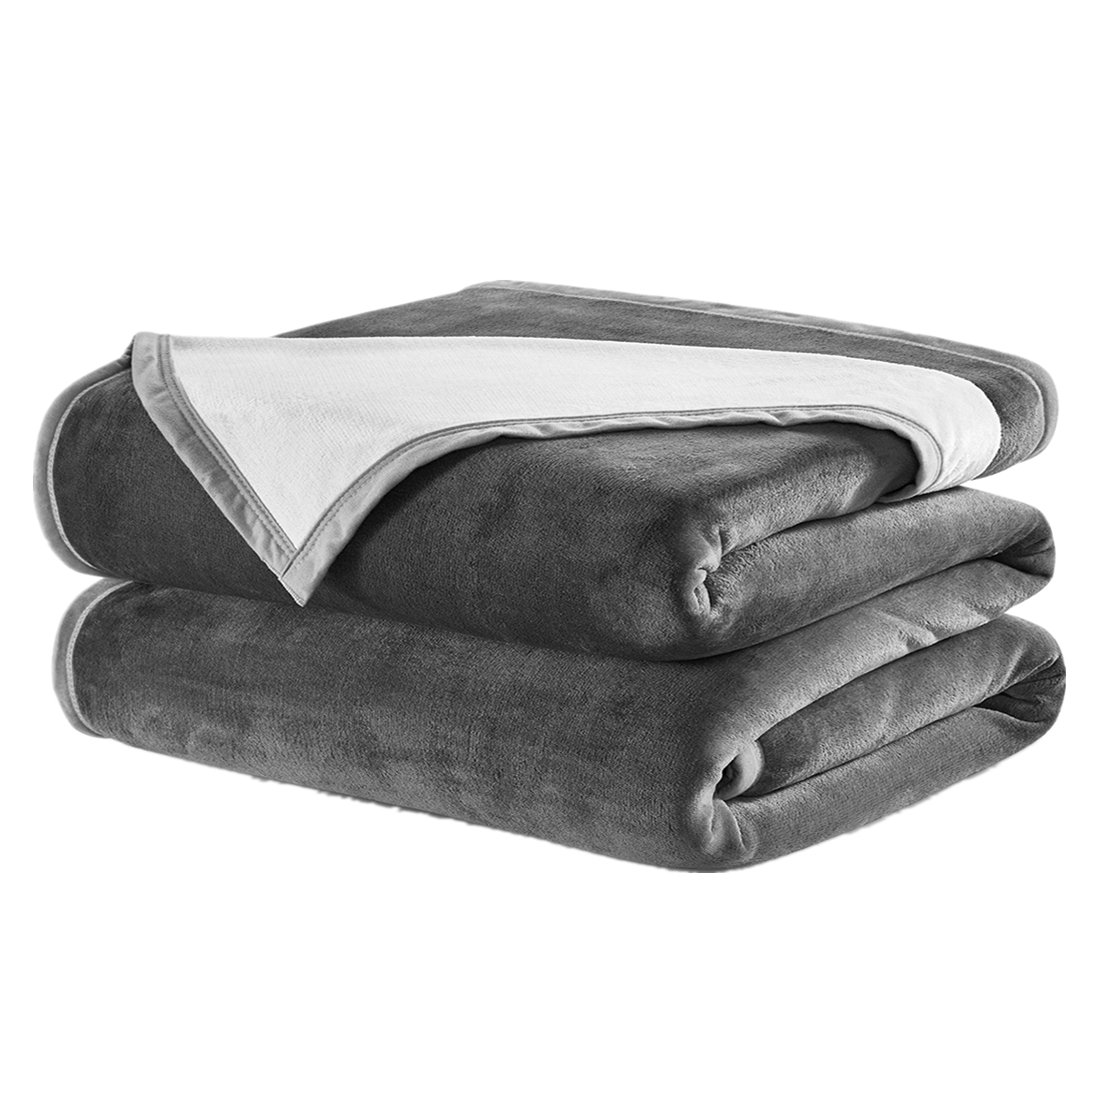 DREAMFLYLIFE King Fleece Blanket, Luxury Super Thick 460GSM Warm Blanket for Bed Home, Double Colors Blanket King Size 90×108 in,(Dark Grey&Ivory)